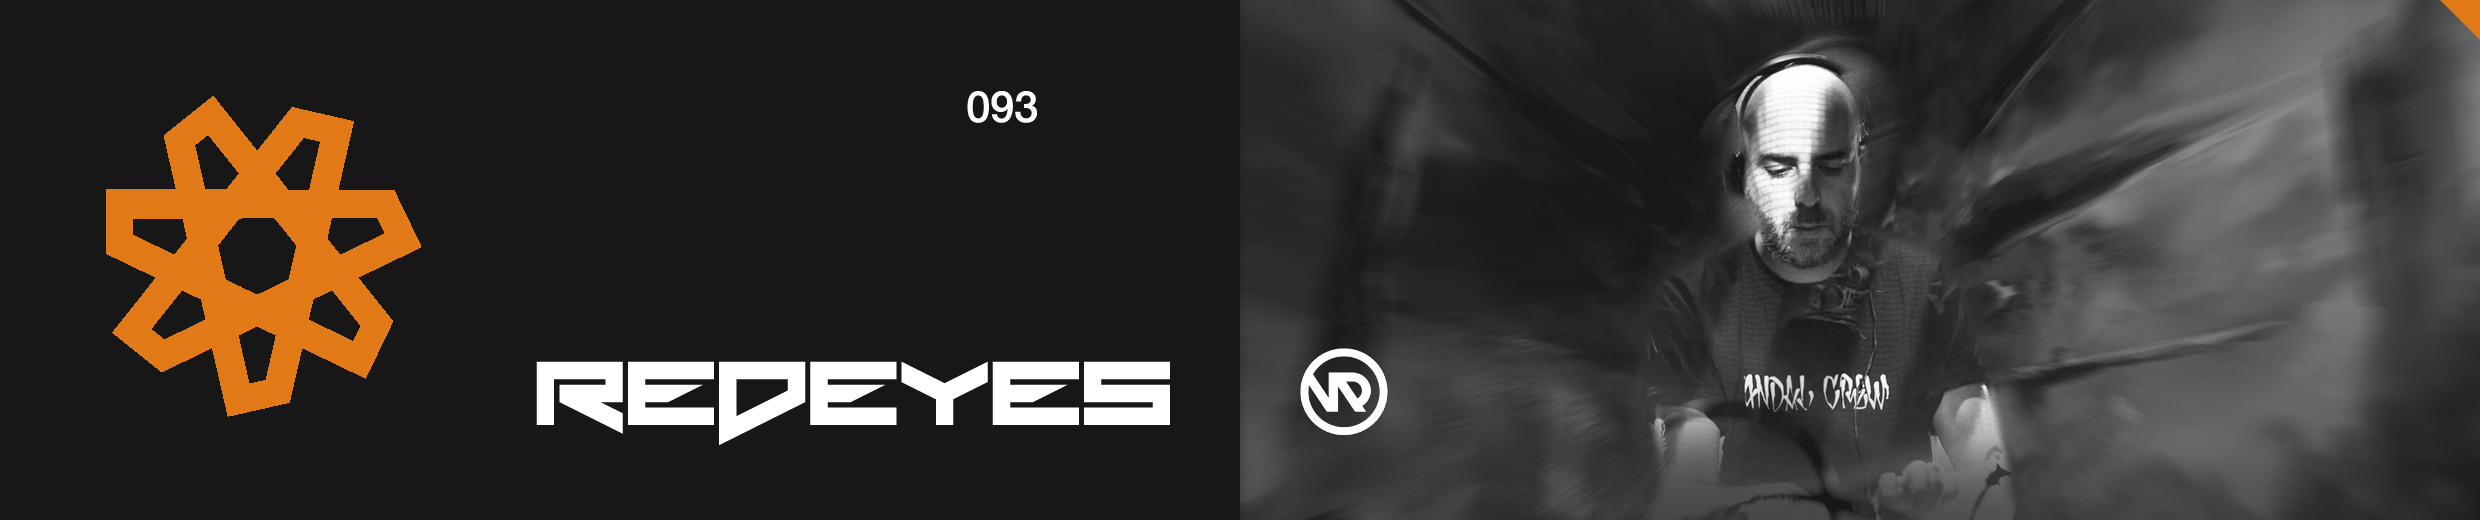 Cybernetic Podcast 093 by Redeyes